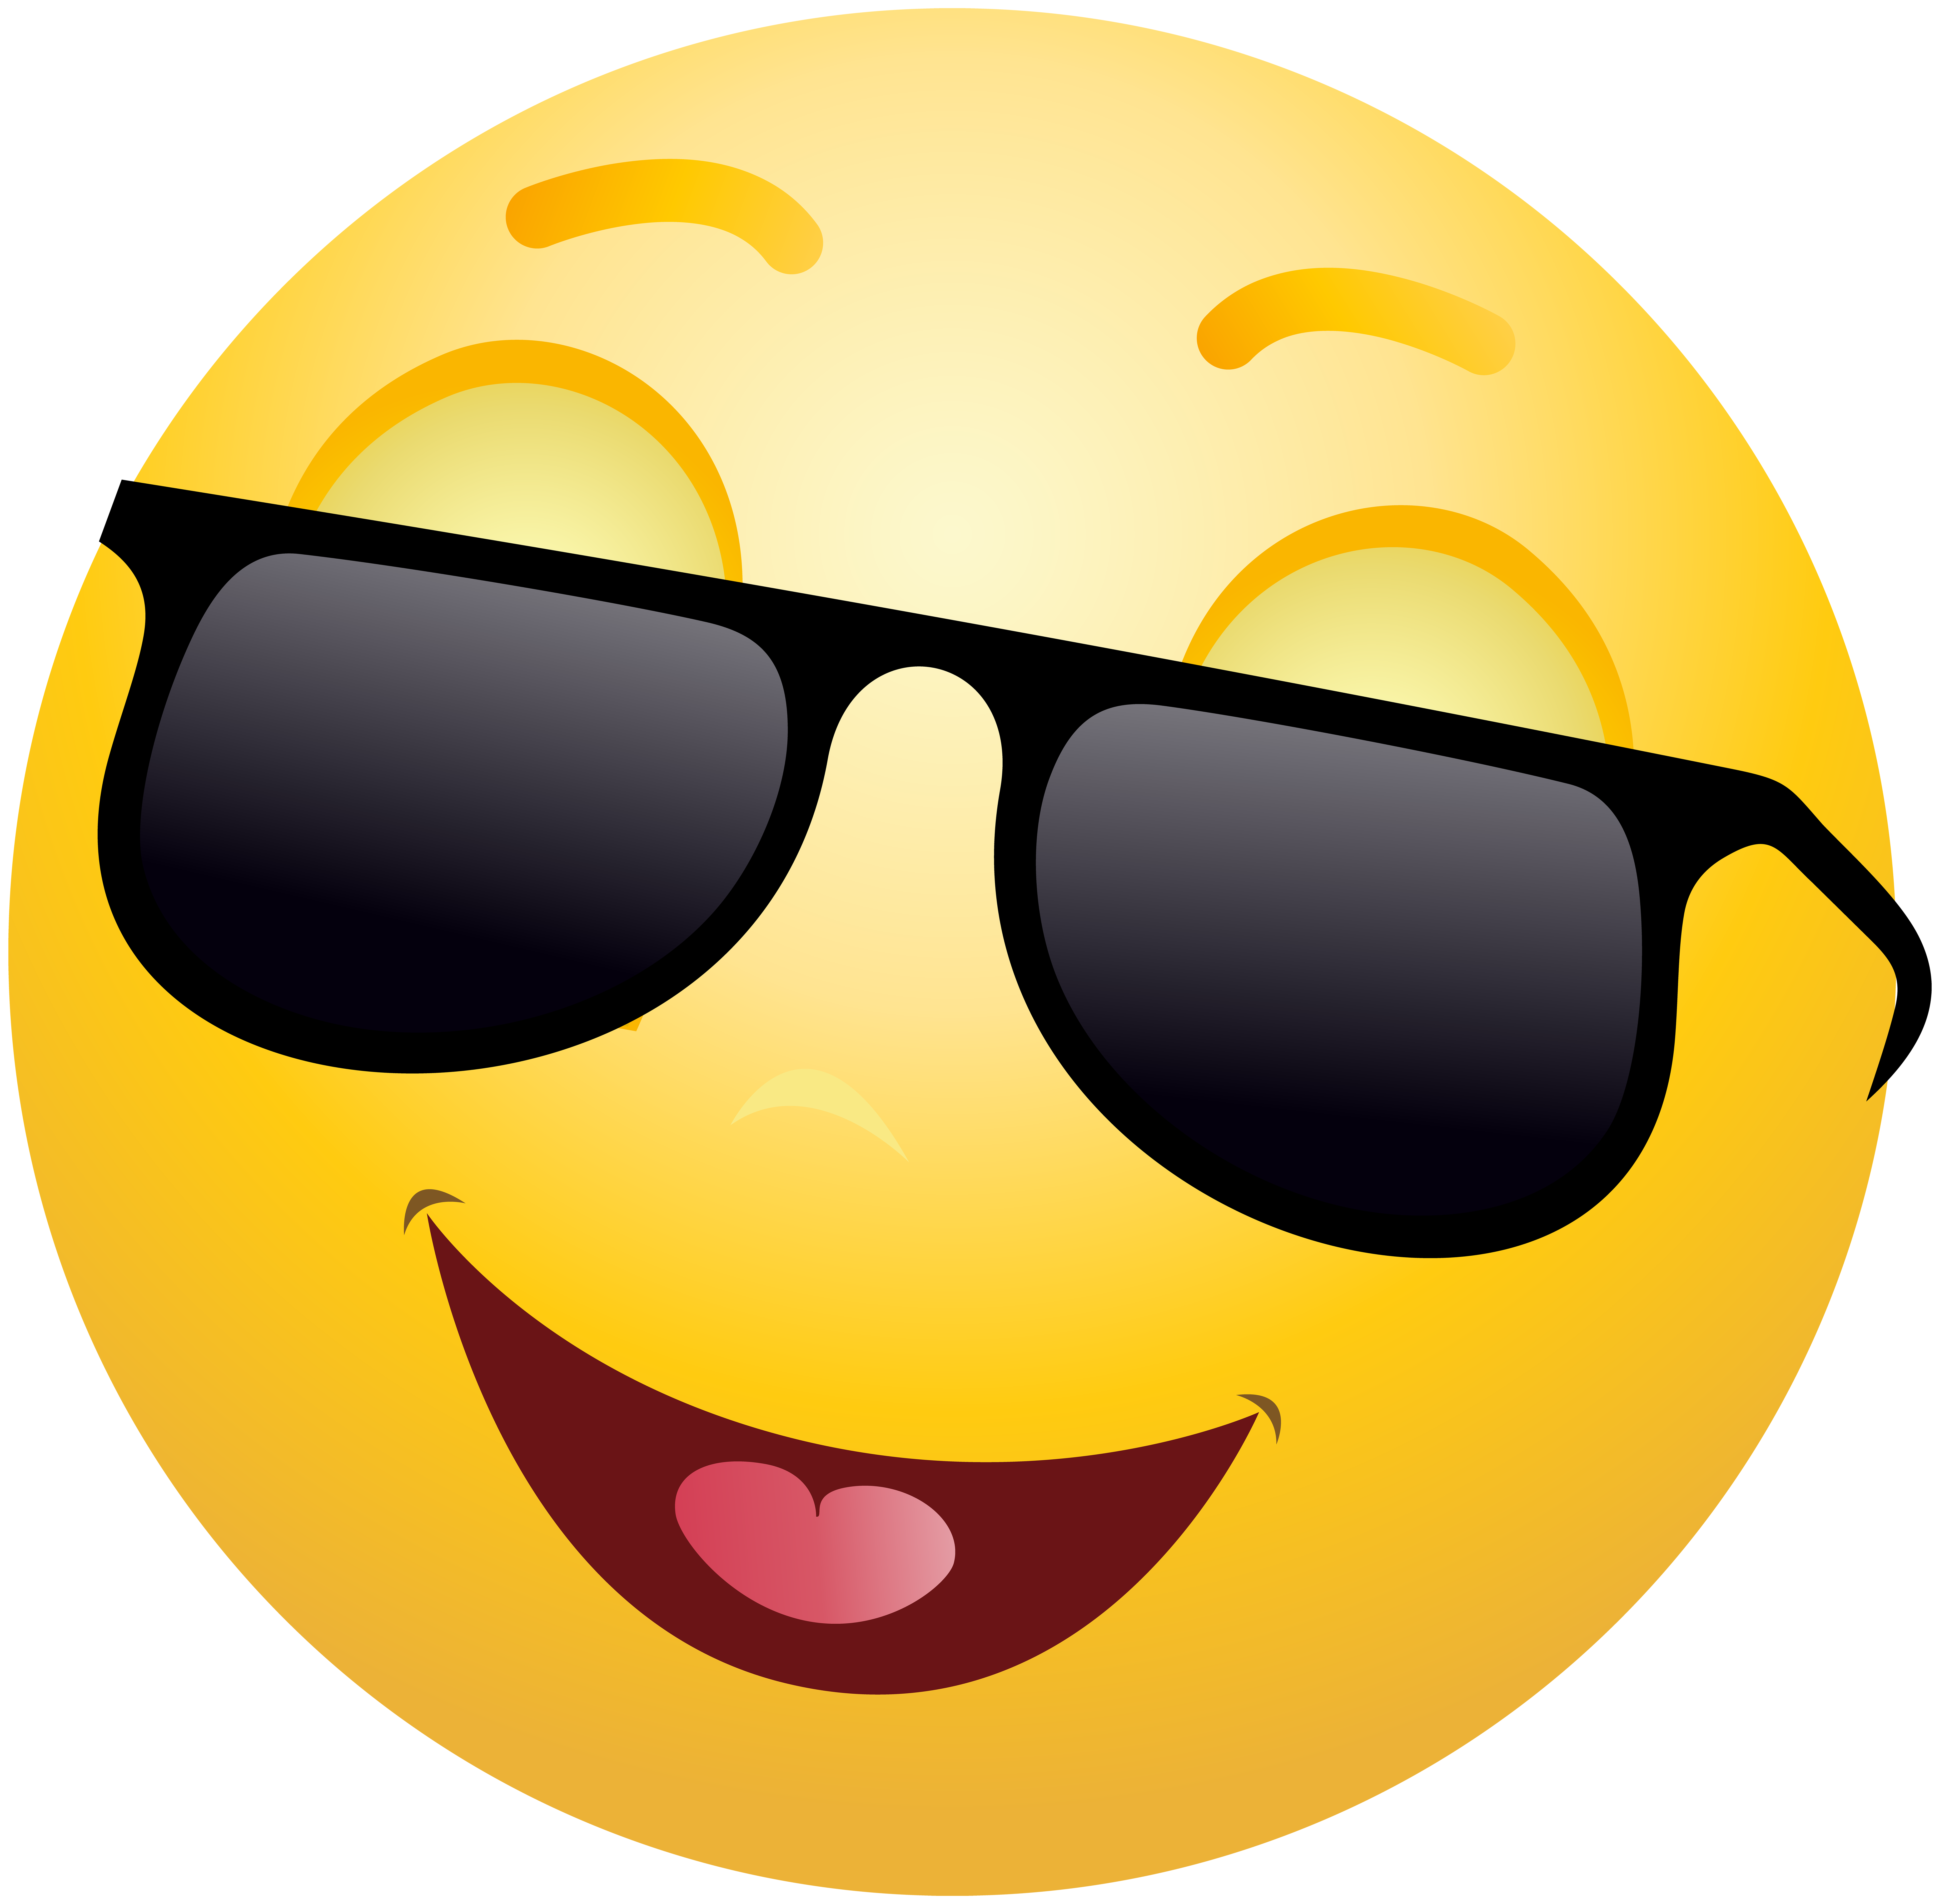 Clipart sunglasses. Smiling emoticon with png